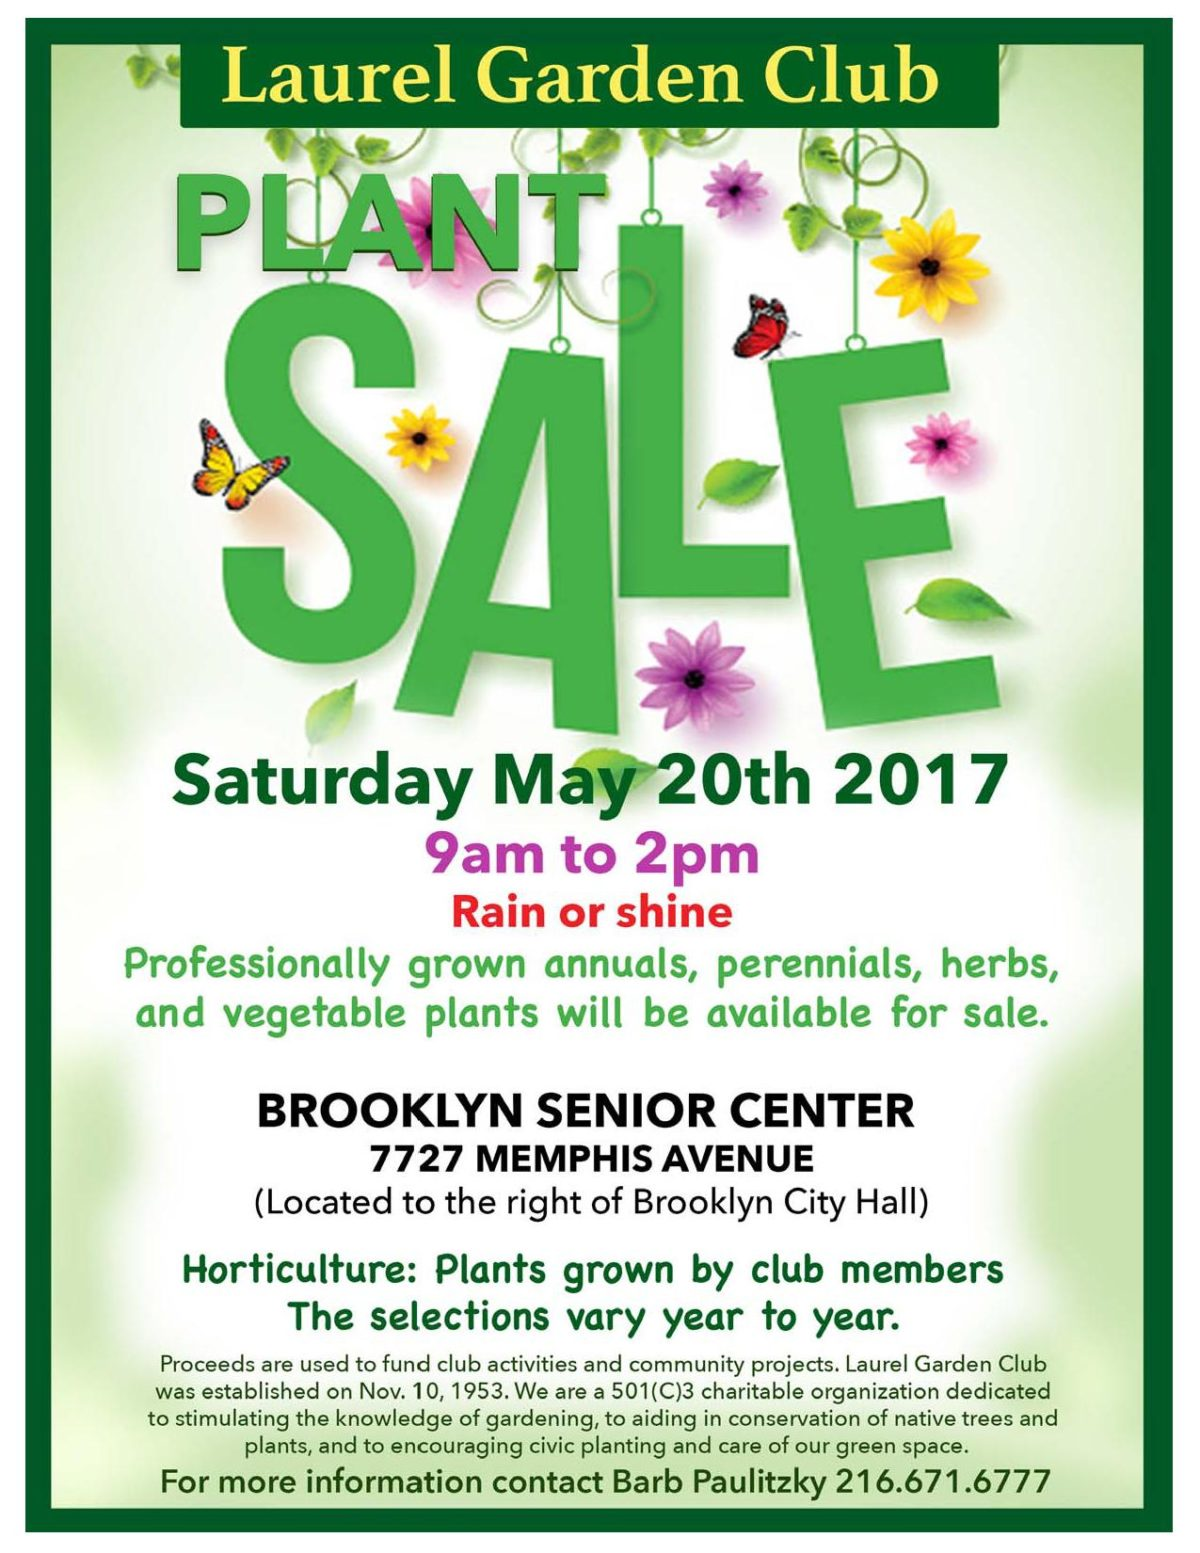 Plant Sale is Sat., May 20, 2017